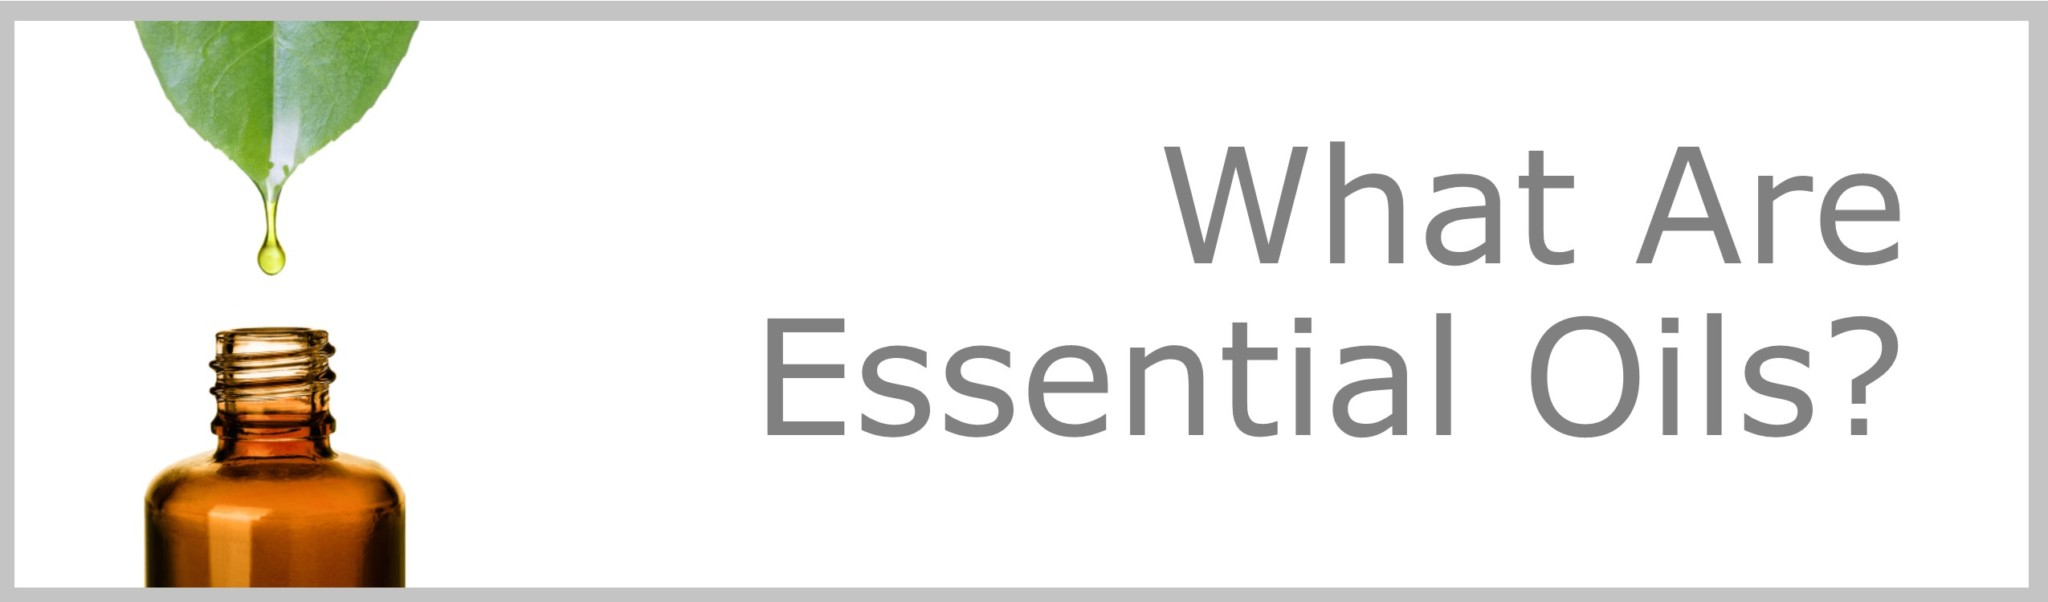 "What are Essential Oils? ""Motherhood Essentials"" www.DrChristinaHibbert.com www.MotherhoodEssential.com"